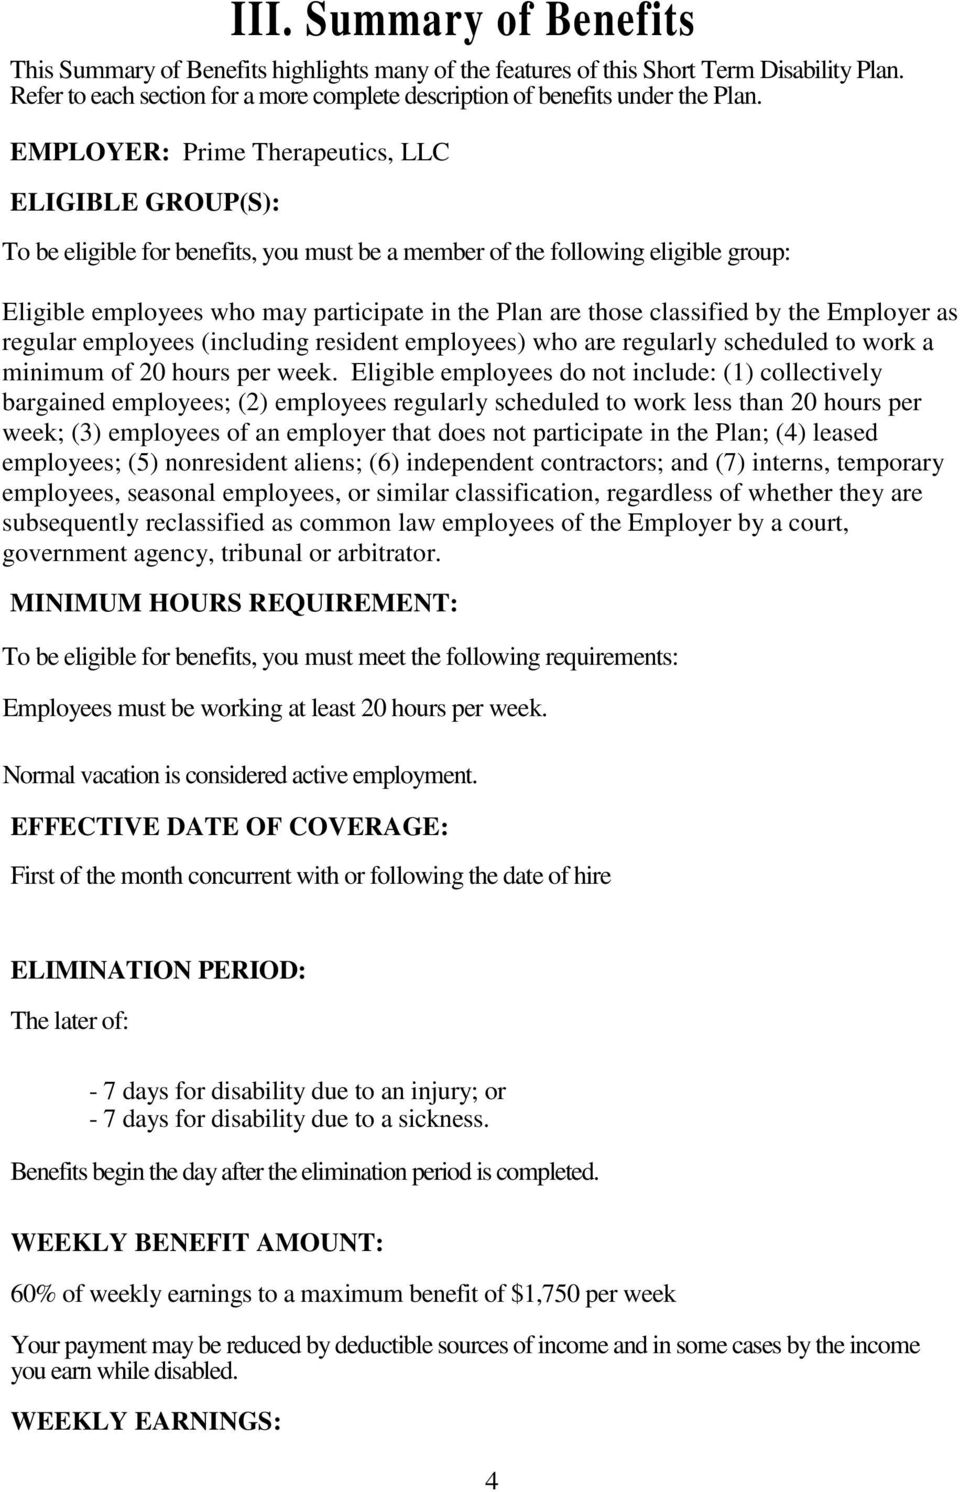 classified by the Employer as regular employees (including resident employees) who are regularly scheduled to work a minimum of 20 hours per week.